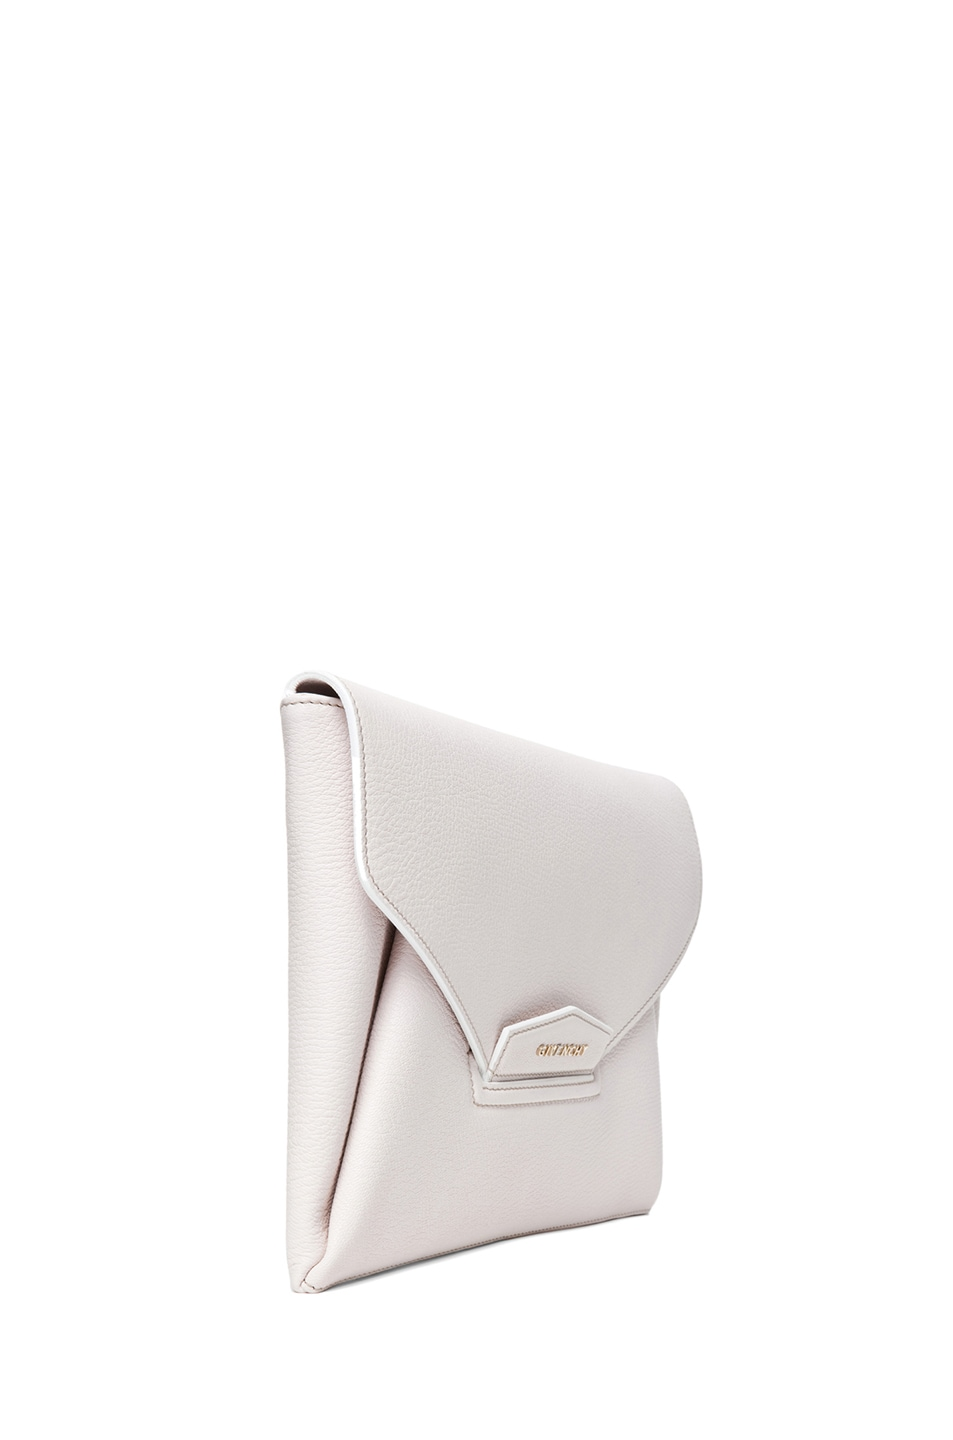 Image 3 of GIVENCHY Medium Antigona Envelope Clutch in Ivory